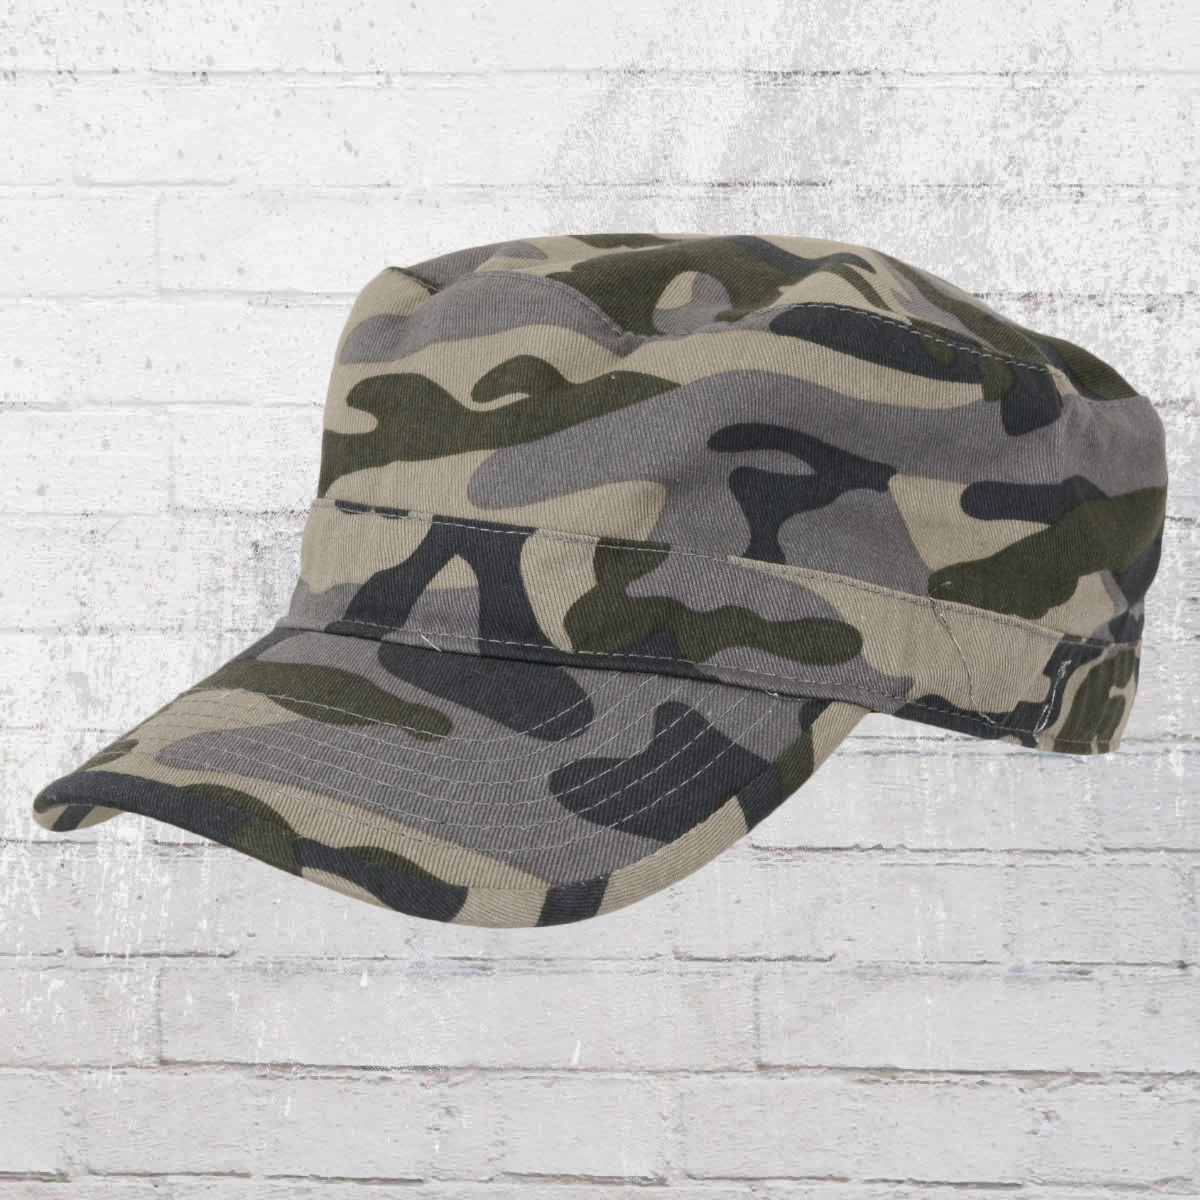 New BEECHFIELD Cotton Camouflage Army Cap Hat in 2 Camo Colours One Size